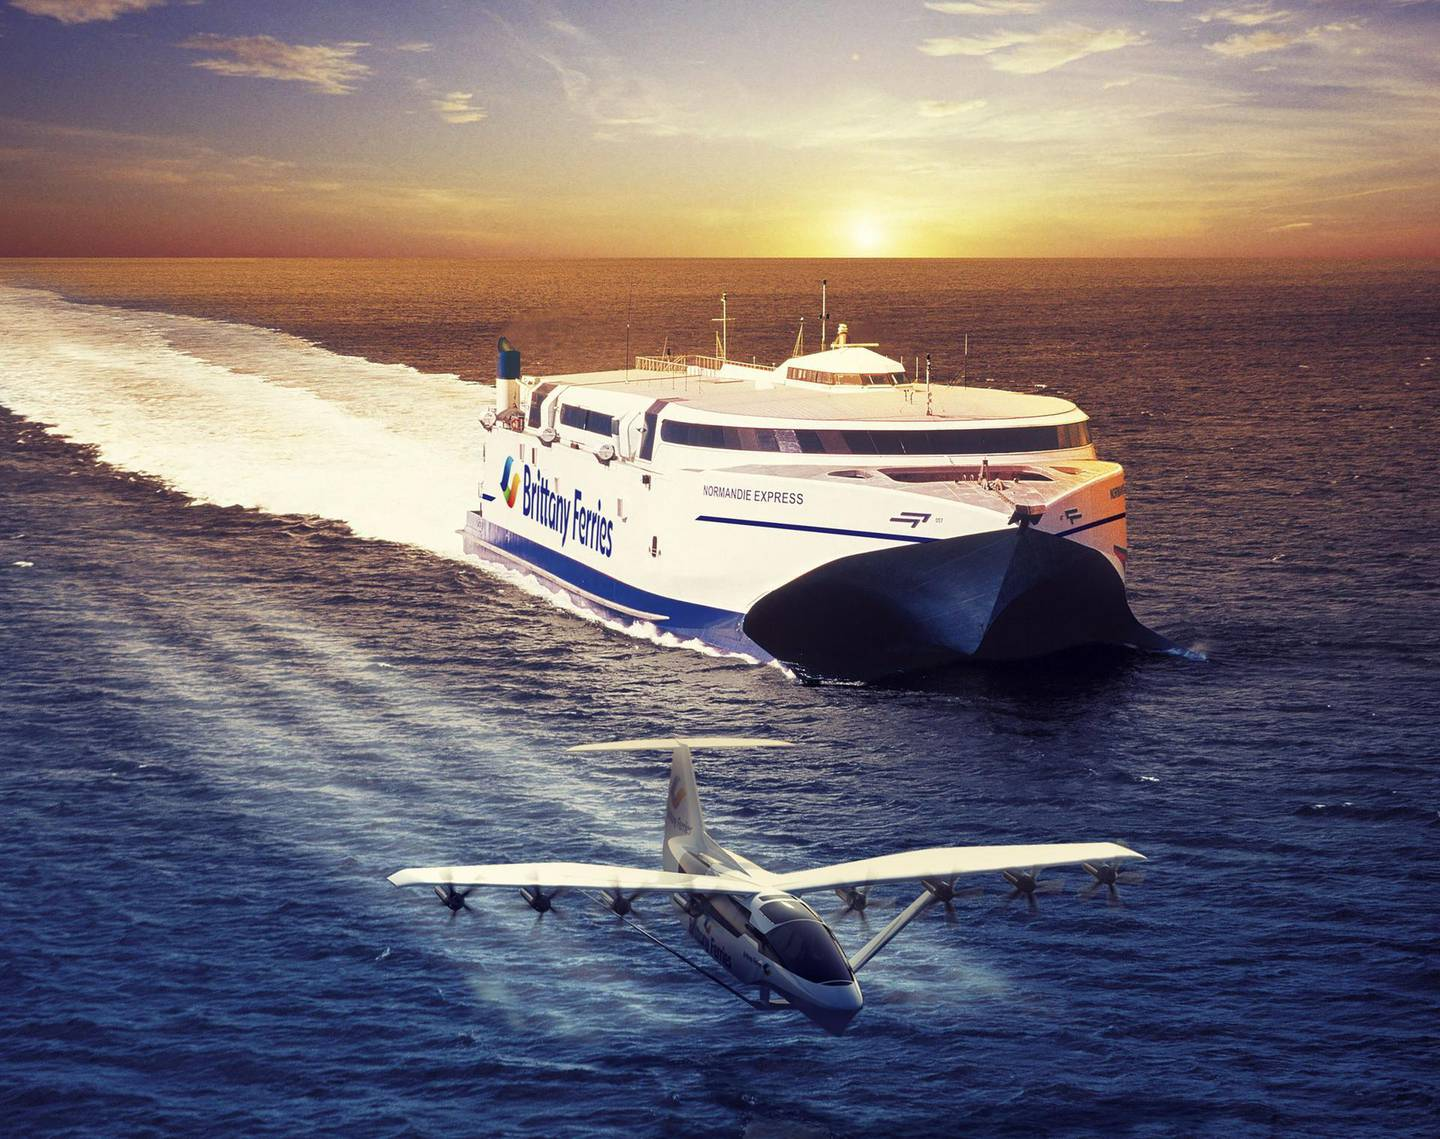 """A handout picture released by Regent - Brittany Ferries company on June 12, 2021, shows an artist concept depicting the Seaglider (front), a 100% electric flying boat created by the US REGENT (Regional Electric Ground Effect Nautical Transport) start-up based in Boston. Brittany Ferries signed a partner agreement to participate in the development of the Seagliders which will welcome from 50 to 150 passengers for trips between Great Britain and France within 2028. - RESTRICTED TO EDITORIAL USE - MANDATORY CREDIT """"AFP PHOTO / REGENT - BRITTANY FERRIES """" - NO MARKETING - NO ADVERTISING CAMPAIGNS - DISTRIBUTED AS A SERVICE TO CLIENTS  / AFP / REGENT - BRITTANY FERRIES / STR / RESTRICTED TO EDITORIAL USE - MANDATORY CREDIT """"AFP PHOTO / REGENT - BRITTANY FERRIES """" - NO MARKETING - NO ADVERTISING CAMPAIGNS - DISTRIBUTED AS A SERVICE TO CLIENTS"""